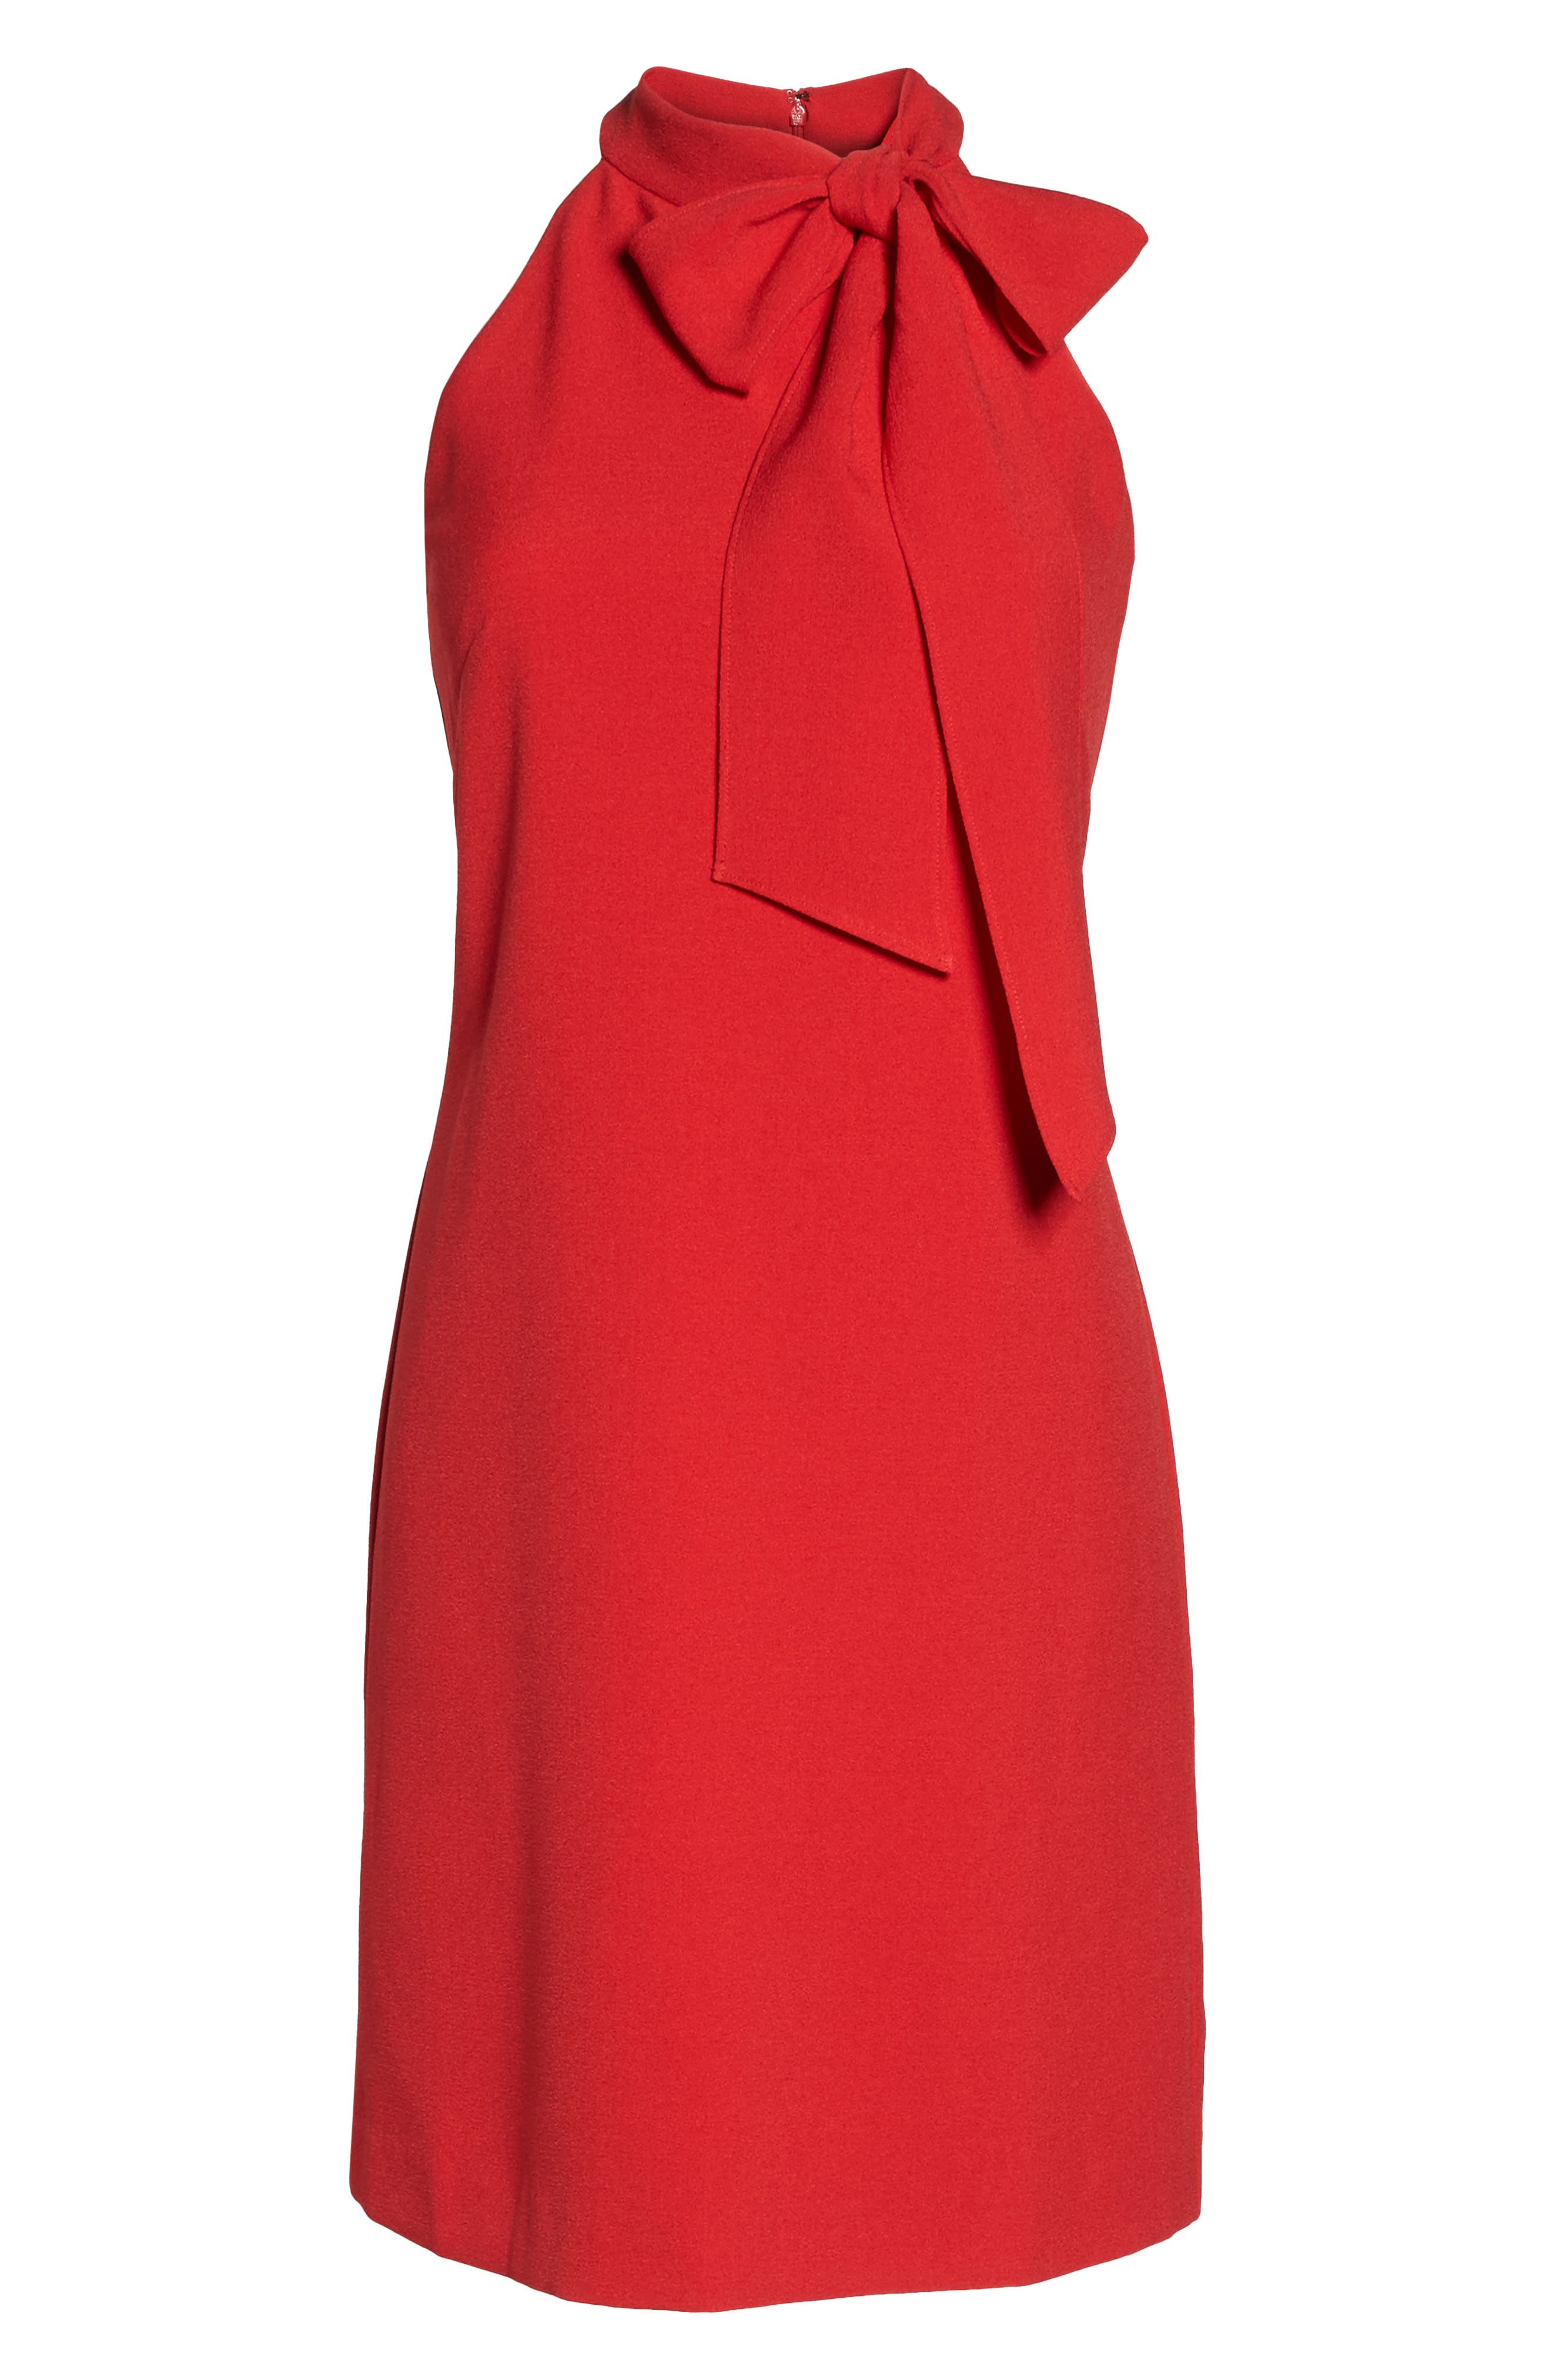 A-Line Dress,                             Alternate thumbnail 6, color,                             Red